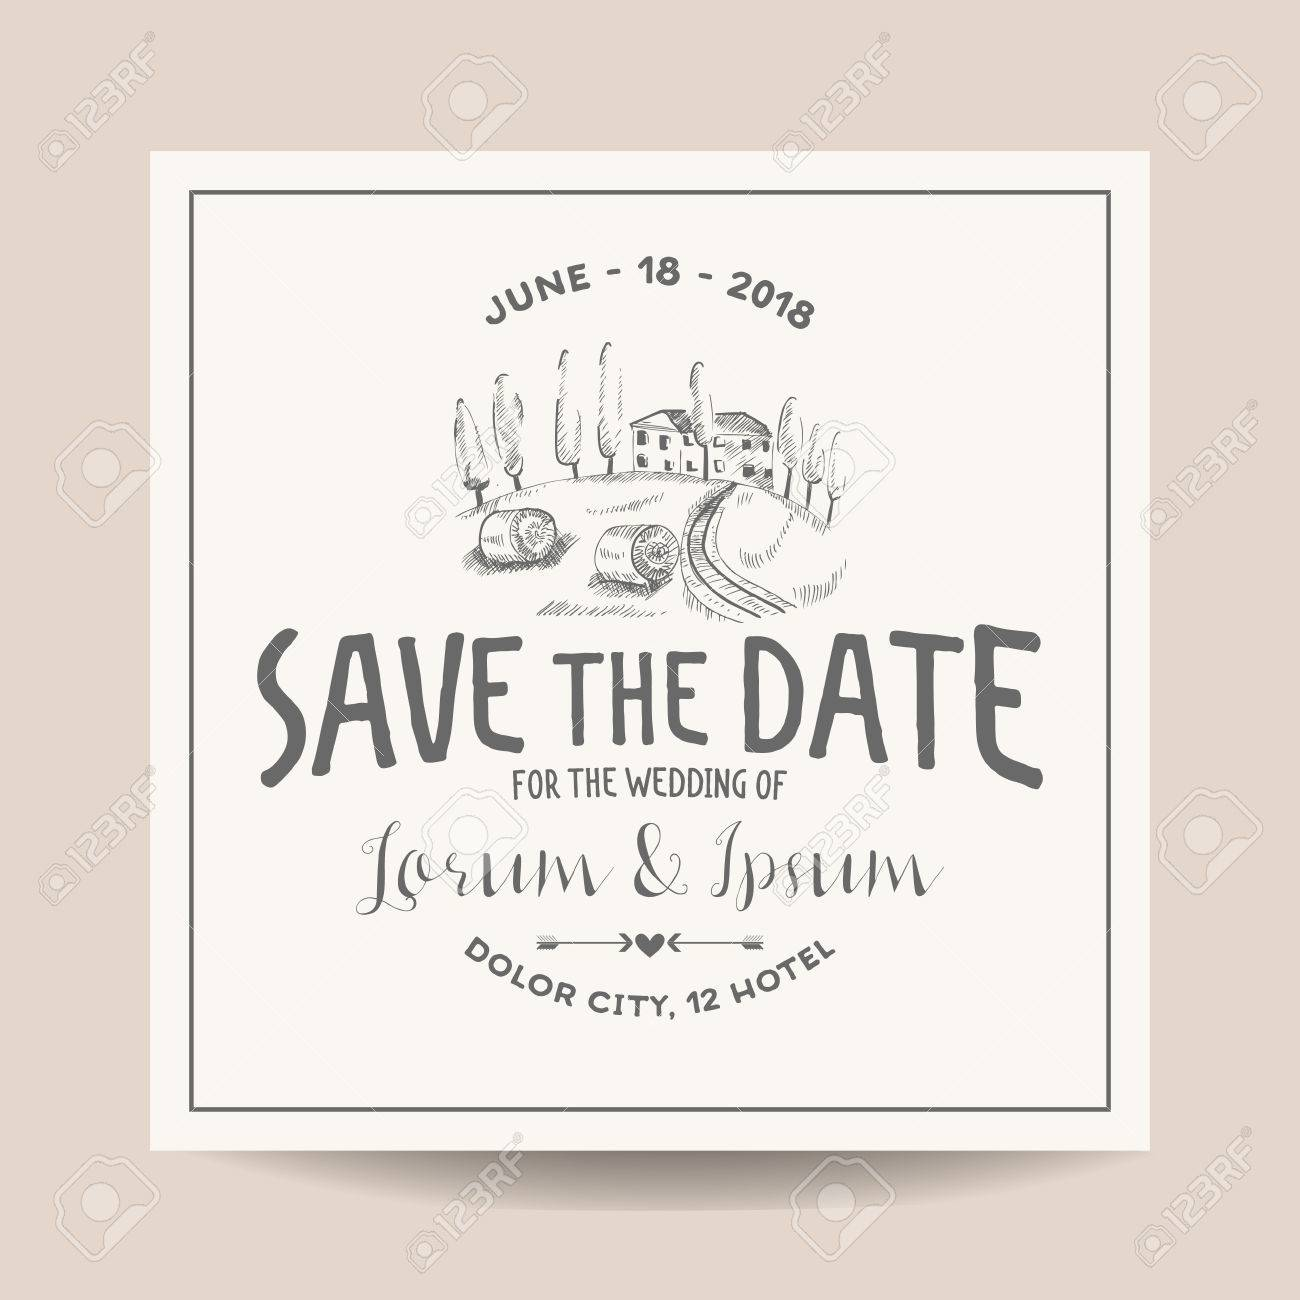 Wedding invitation card save the date wedding card french wedding invitation card save the date wedding card french farm theme vineyard stopboris Images